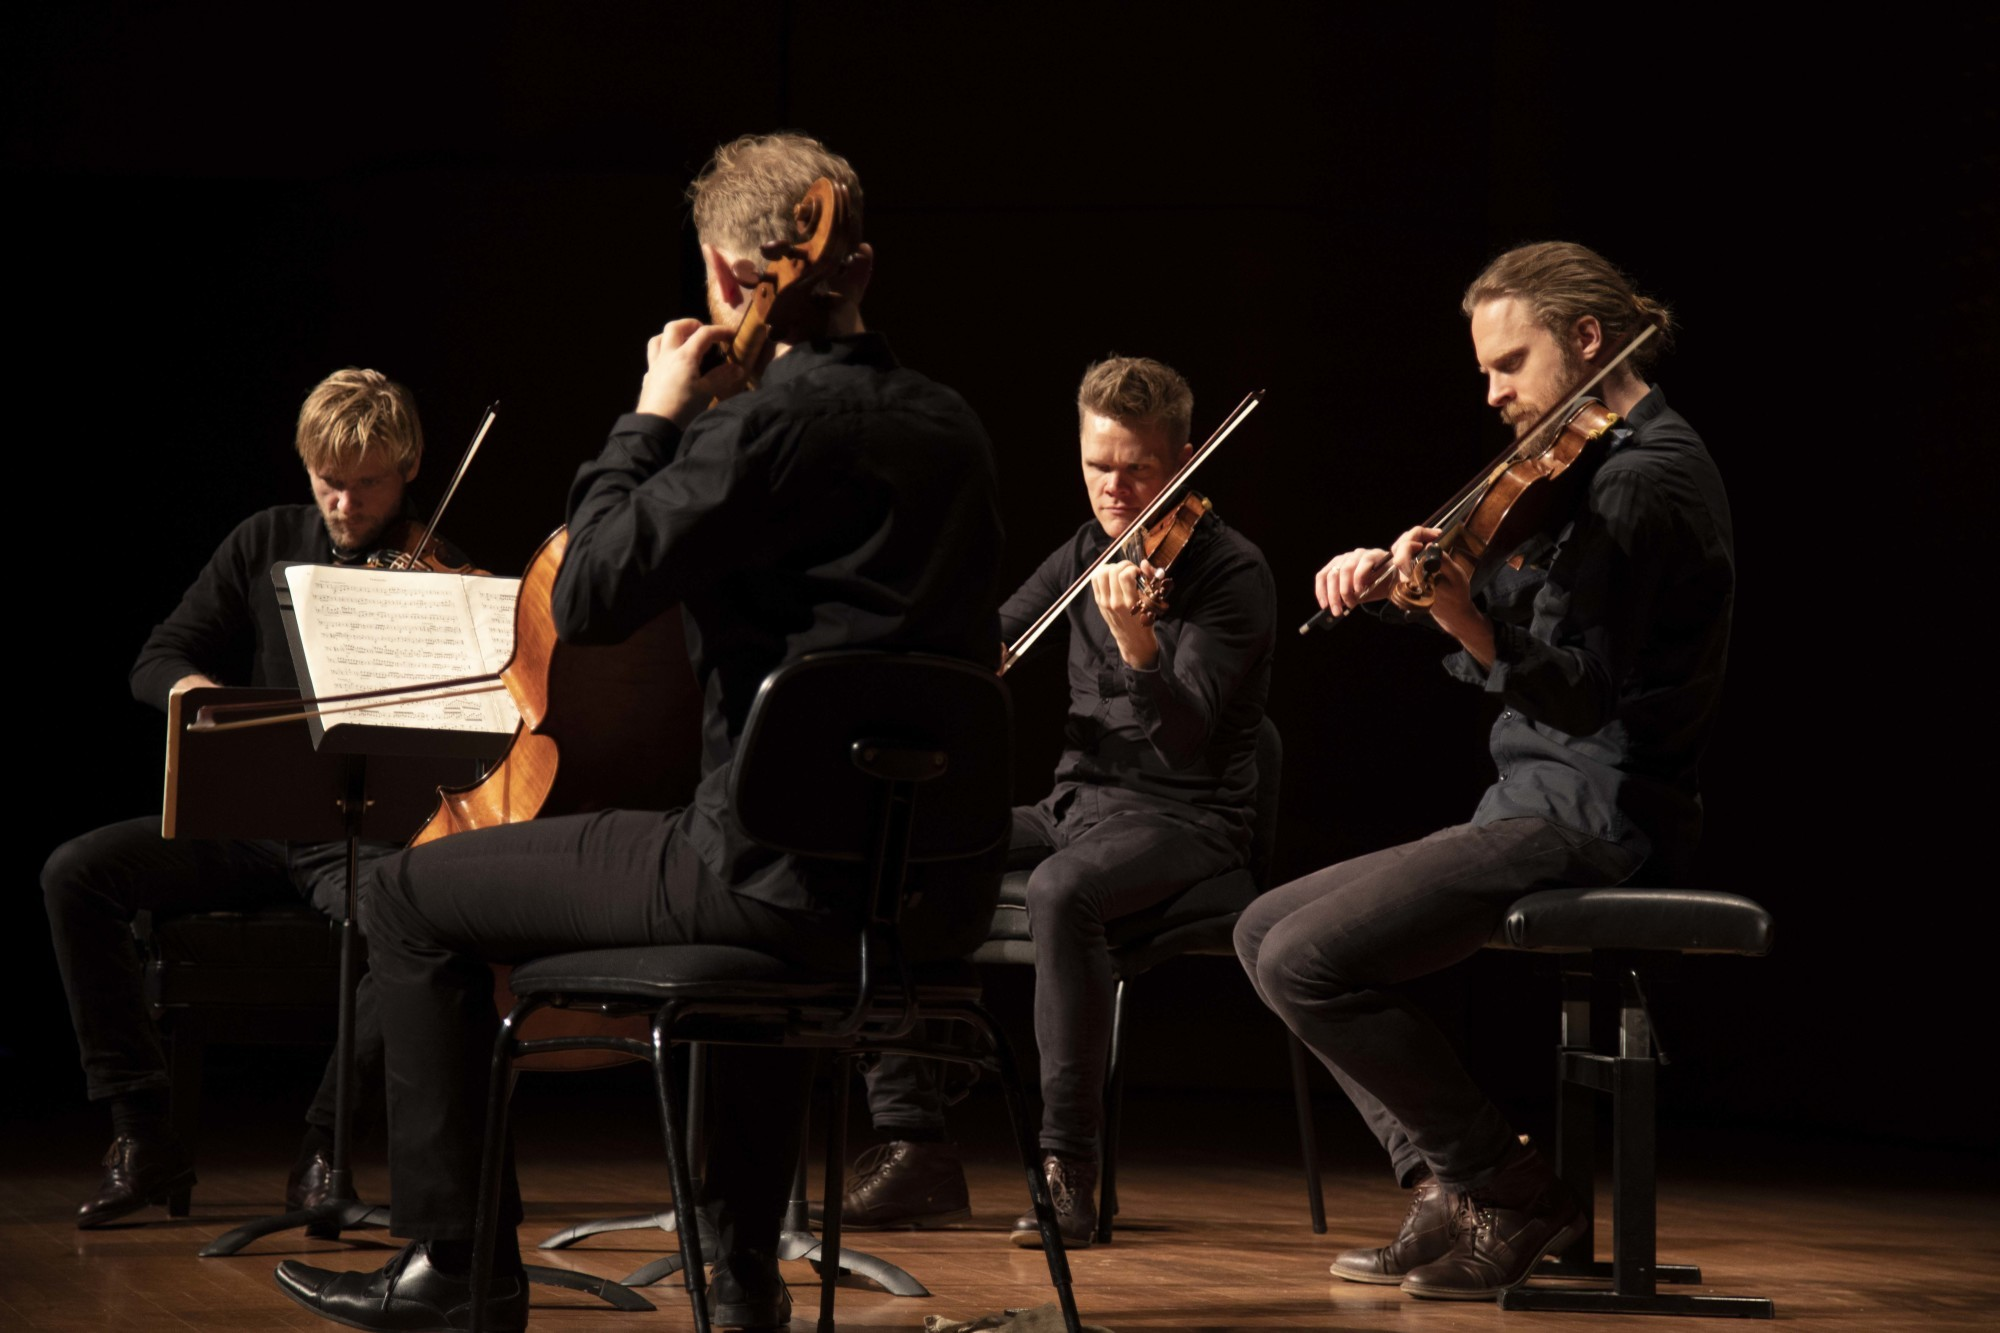 Danish String Quartet by Tristan Cook